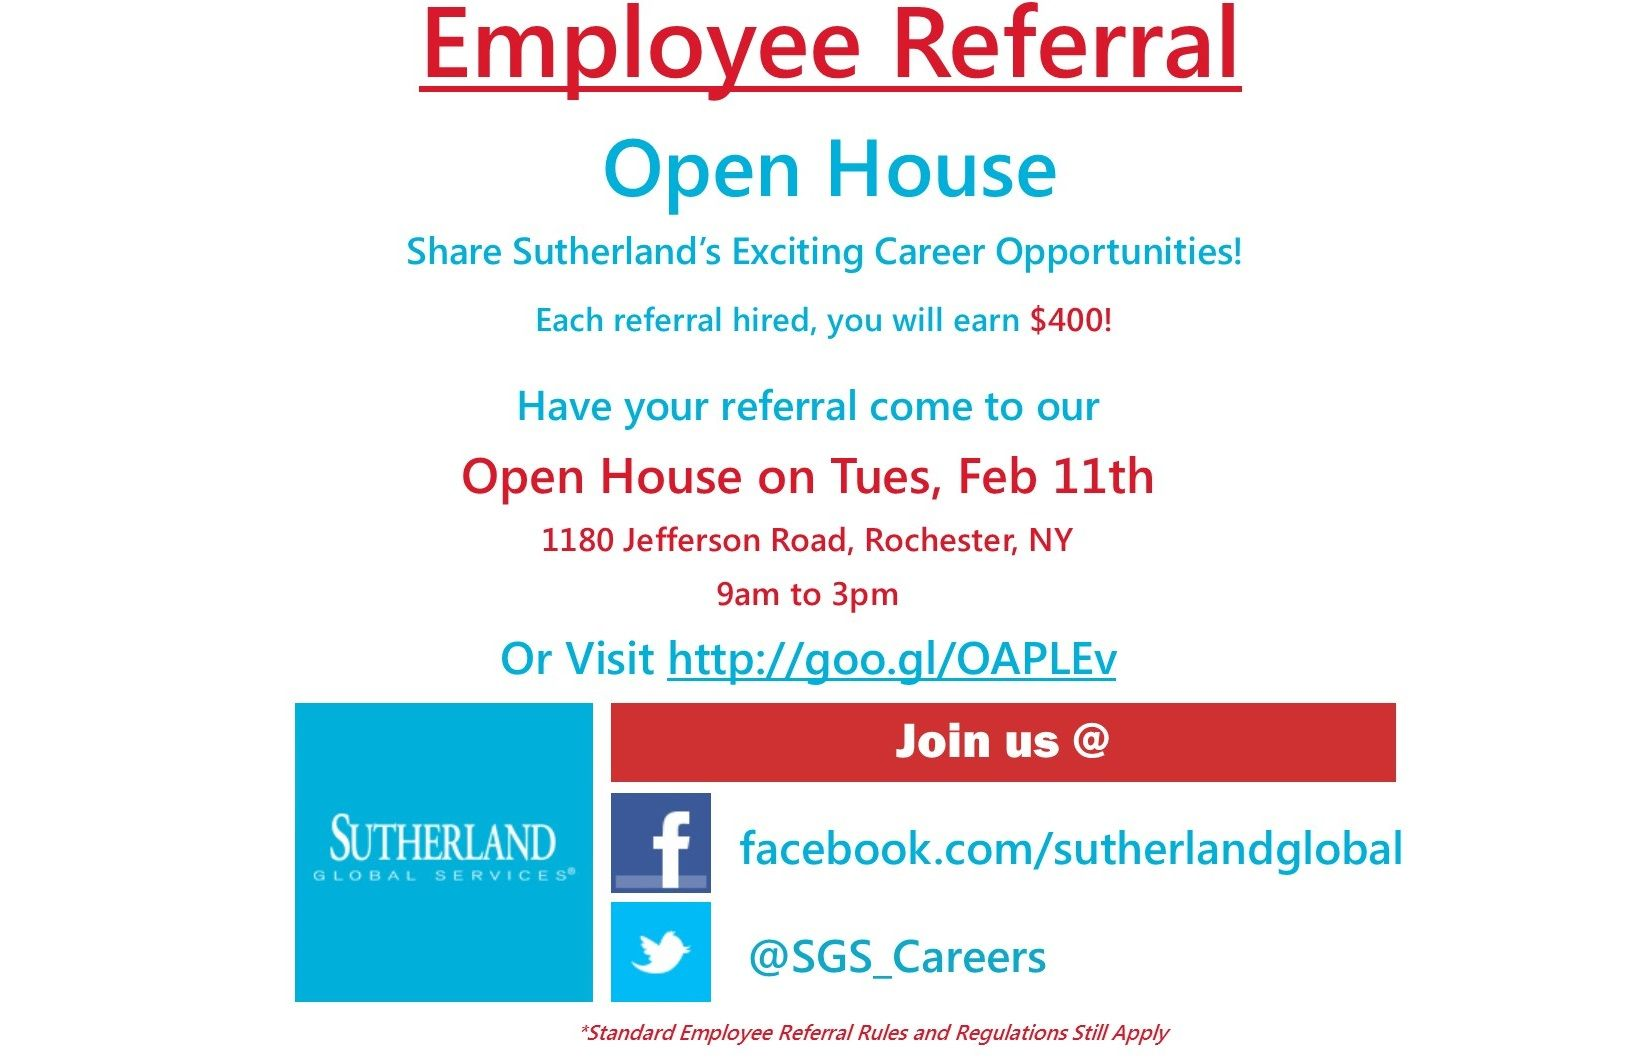 If You Re In Rochester And Are Looking For A Job You Need To Check Out The Sutherland Global Services Open House Come Open House Looking For A Job Sutherland